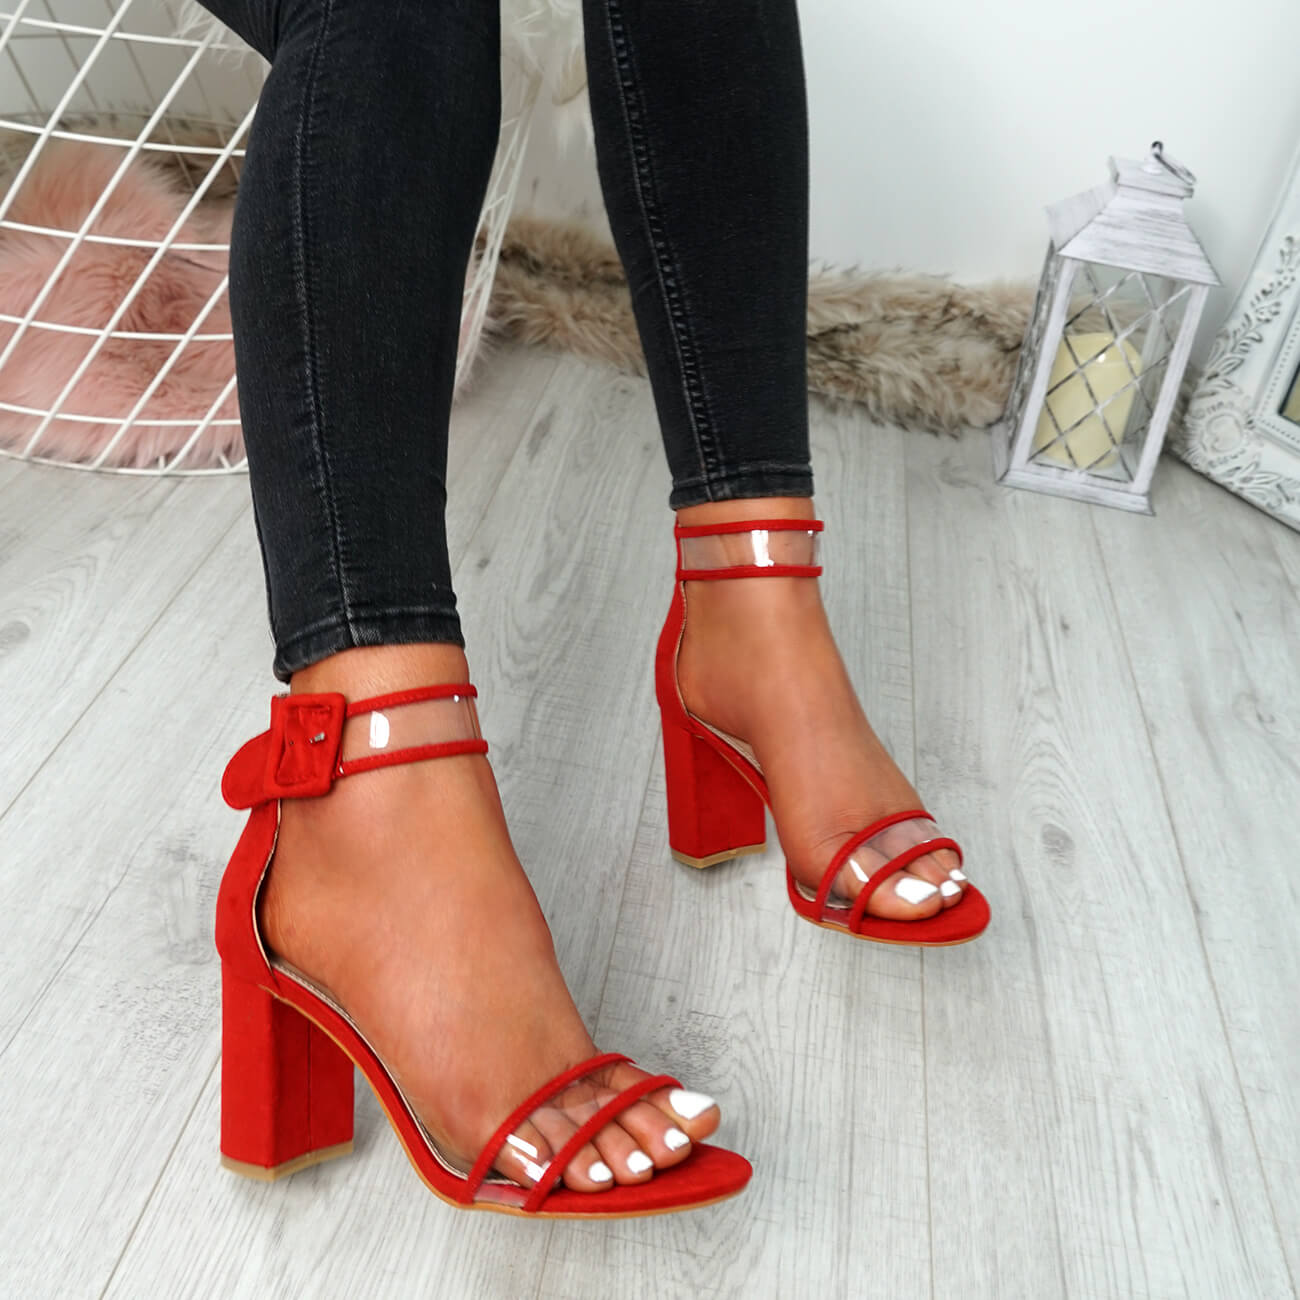 WOMENS-LADIES-ANKLE-STRAP-PEEP-TOE-HIGH-BLOCK-HEEL-SANDALS-FASHION-SHOES thumbnail 27